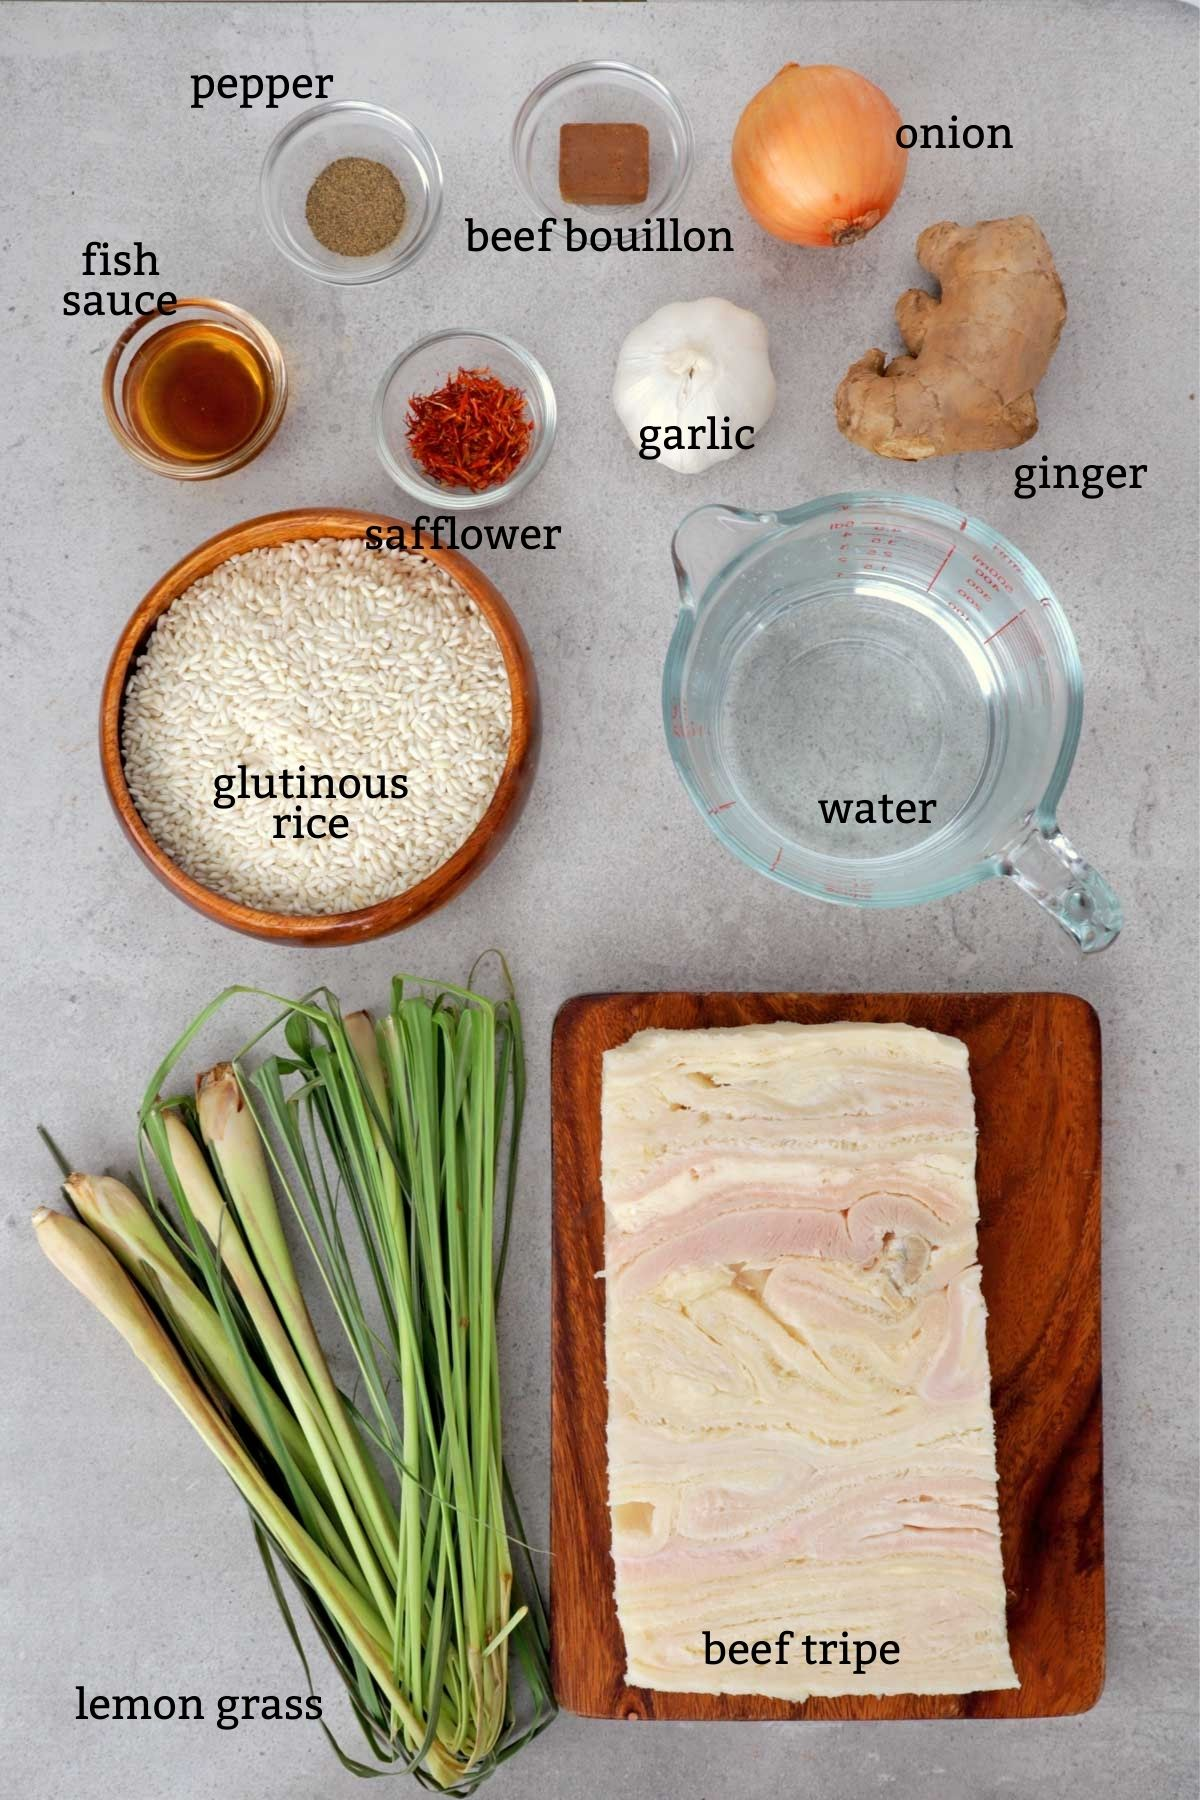 Ingredients for making Goto or Lugaw.